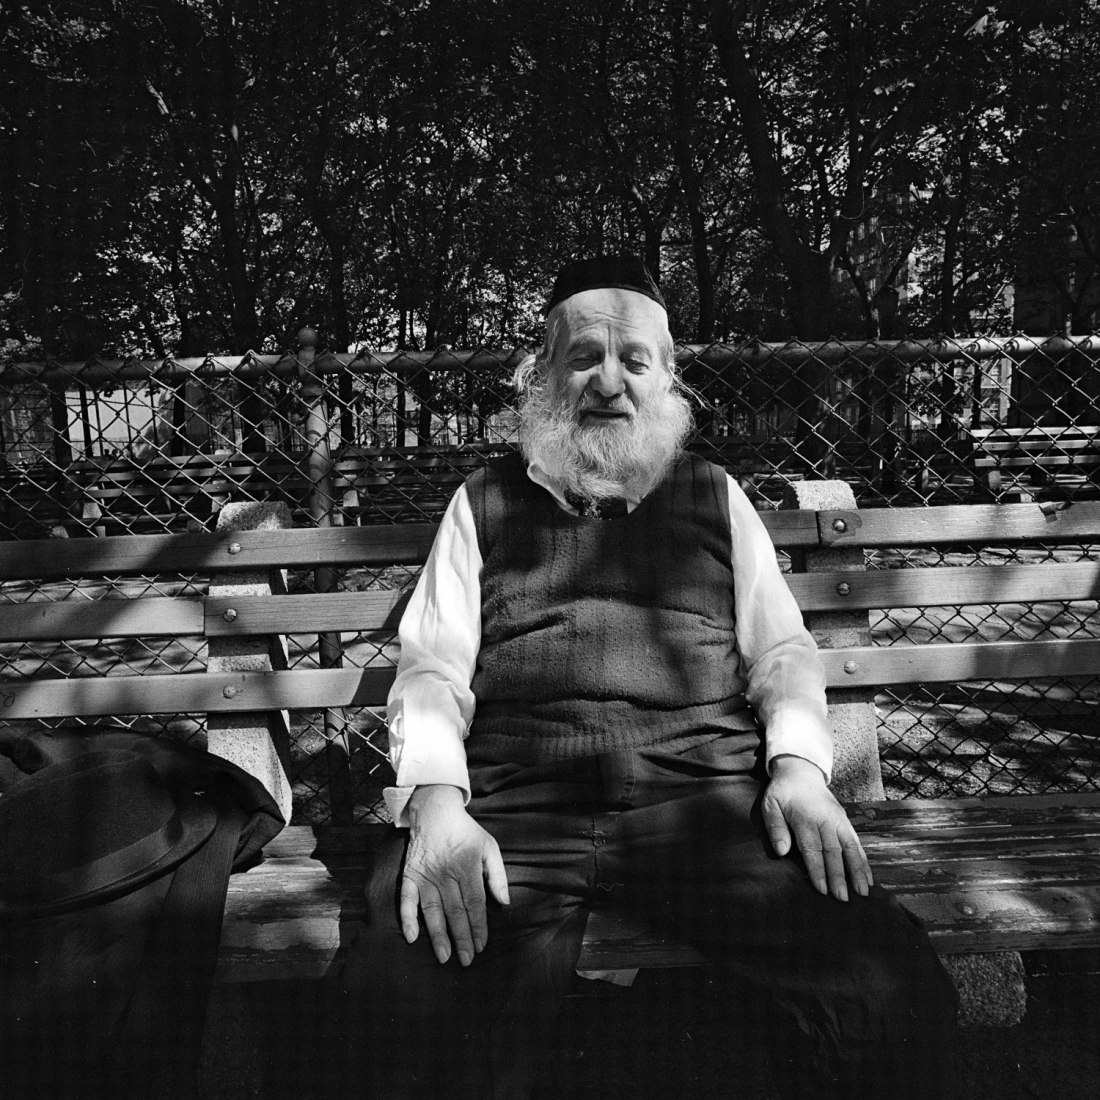 White Bearded Man on Park Bench in Dappled Sunlight, NY, May 1977 © Meryl Meisler